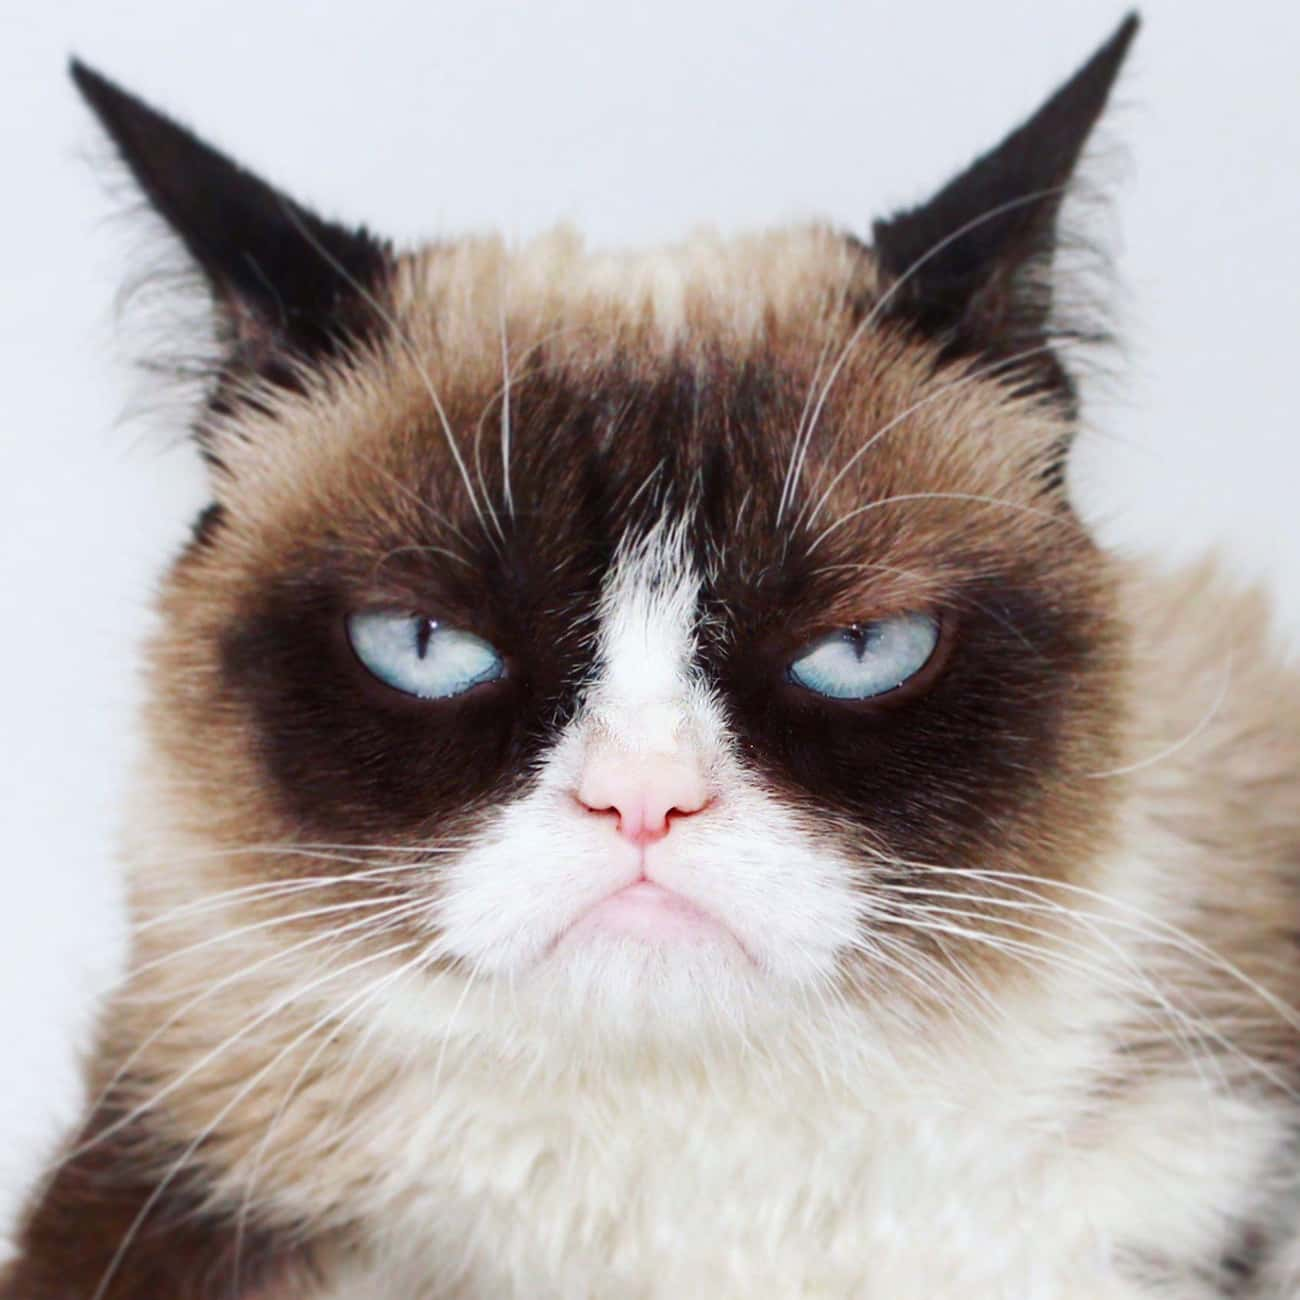 Grumpy Cat is listed (or ranked) 4 on the list Resting Bitch Face: Who Does It Best?